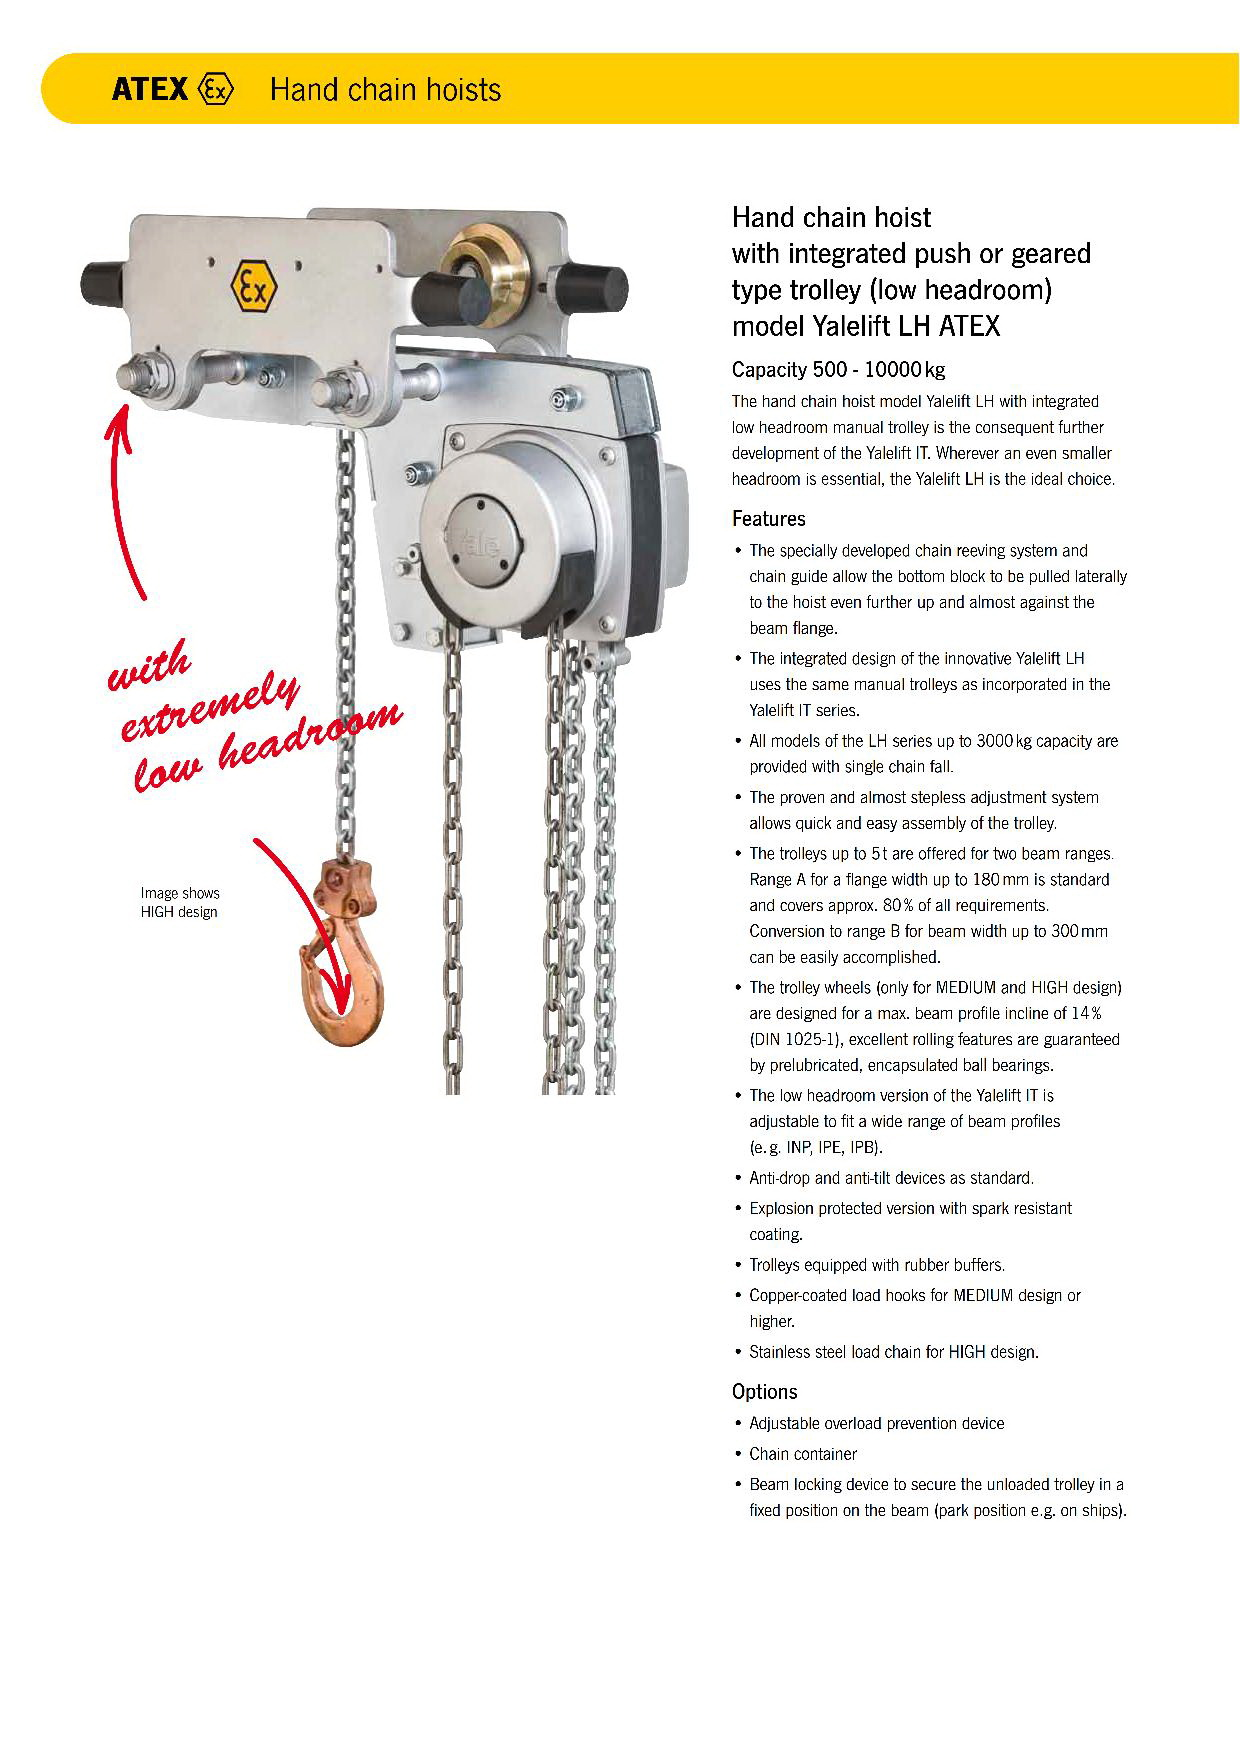 Yale Hand Chain Hoist with integrated push or geared type trolley (low headroom) Model Yalelift LH ATEX